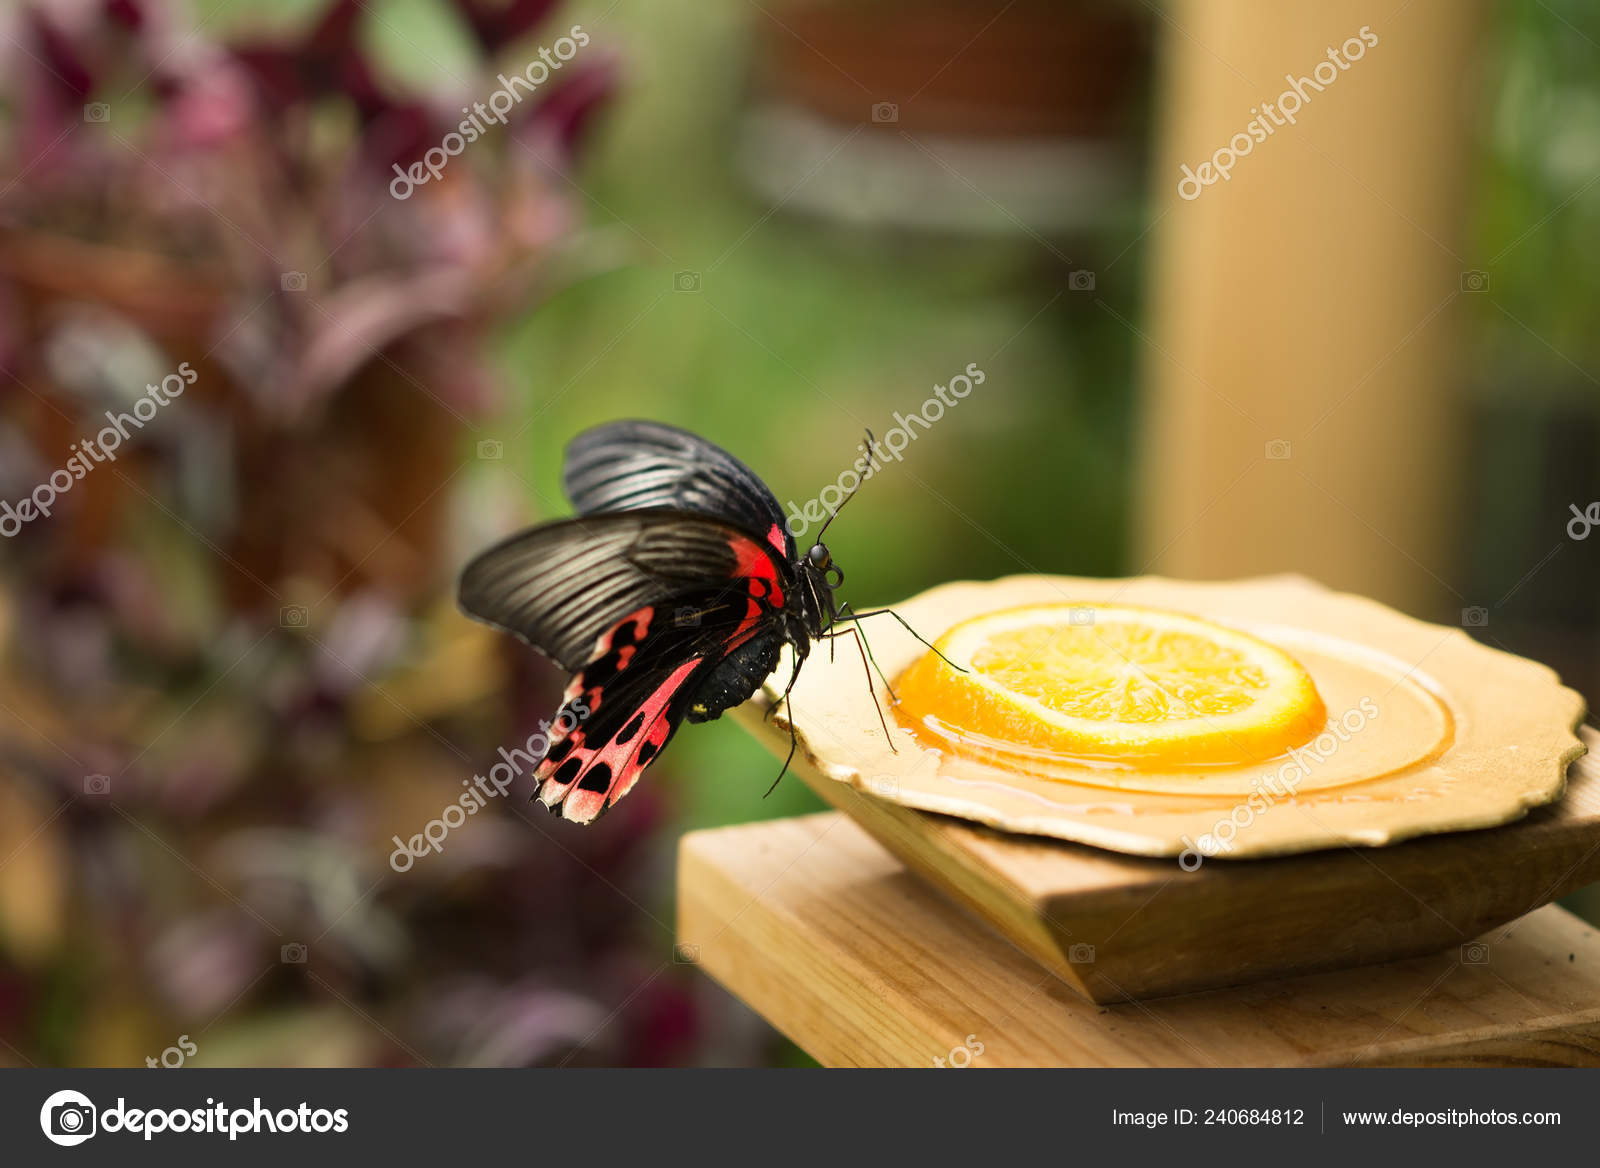 Tropic fragile butterfly sitting and eating lemon juice